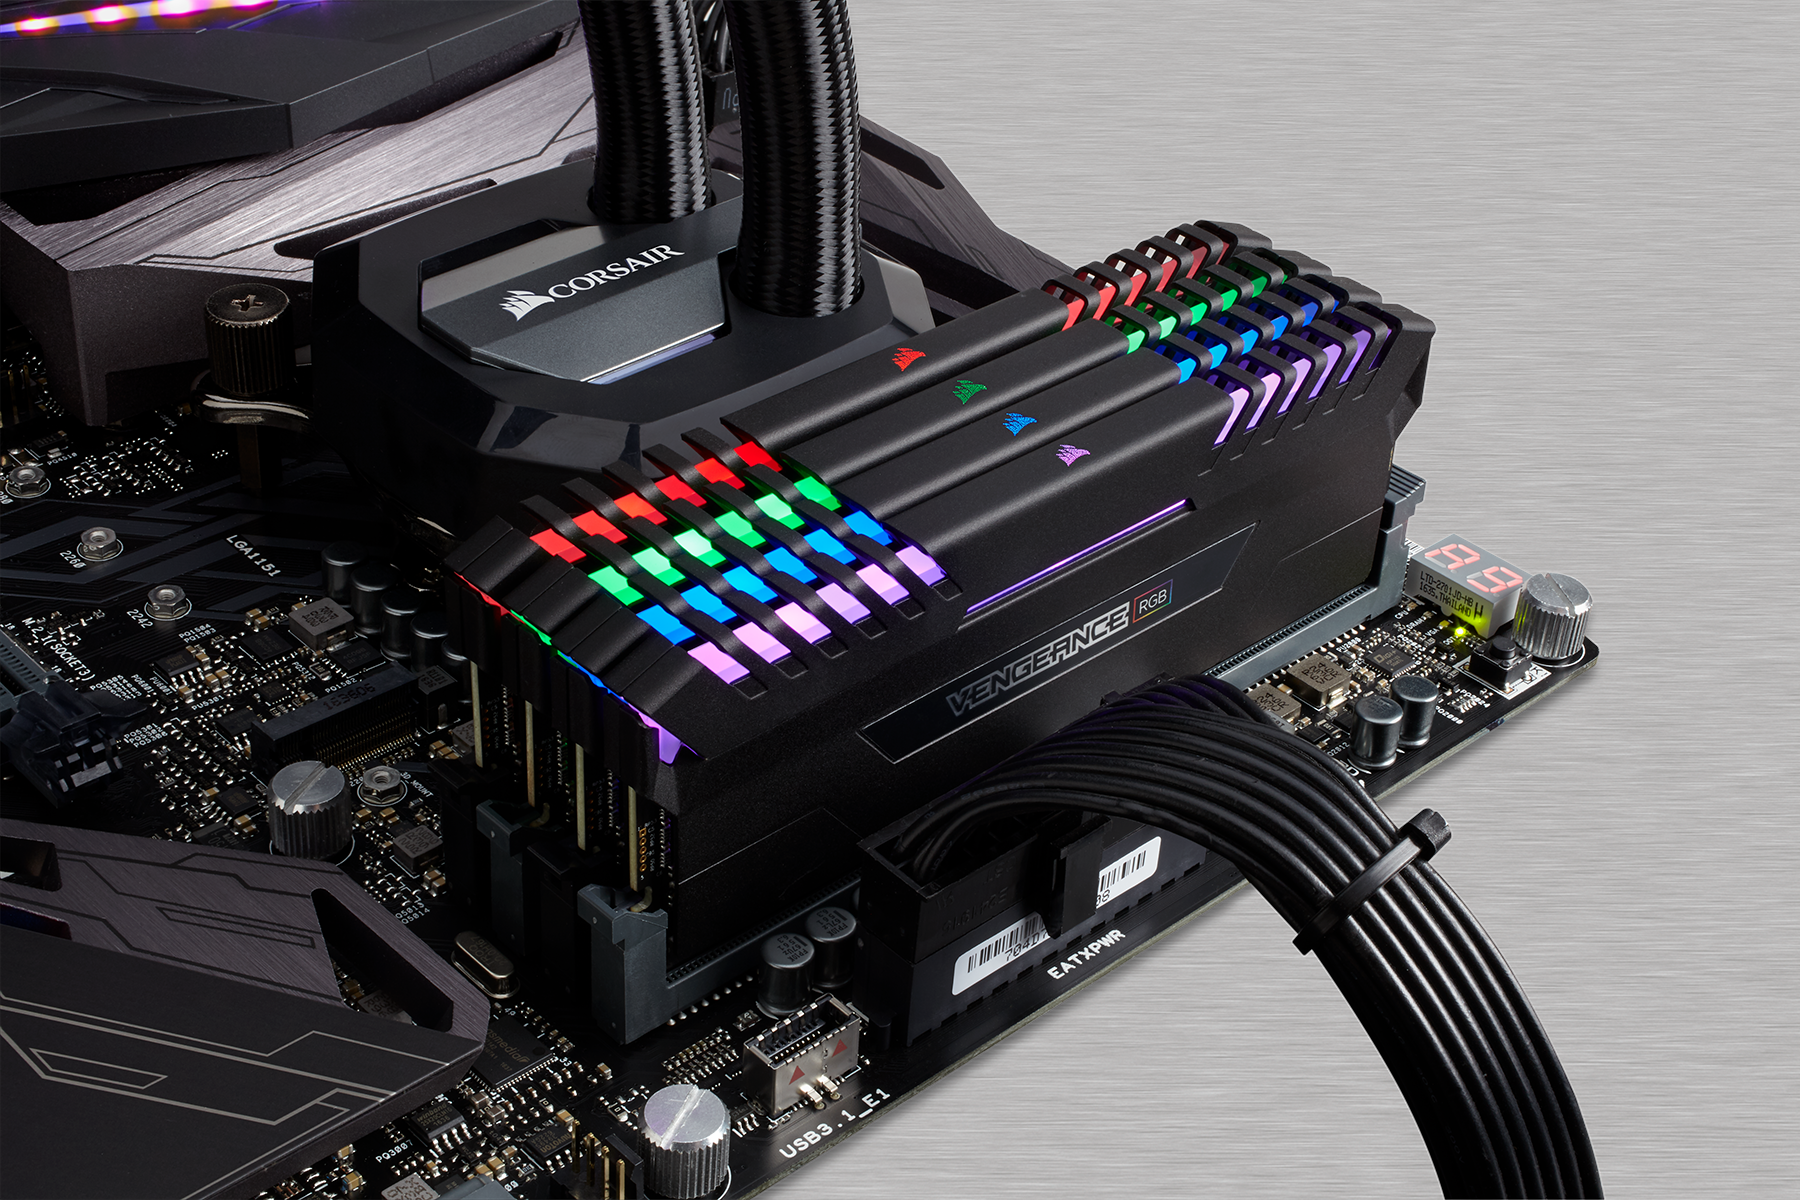 Corsair Vengeance RGB DDR4 Memory Modules with LEDs Now on ...